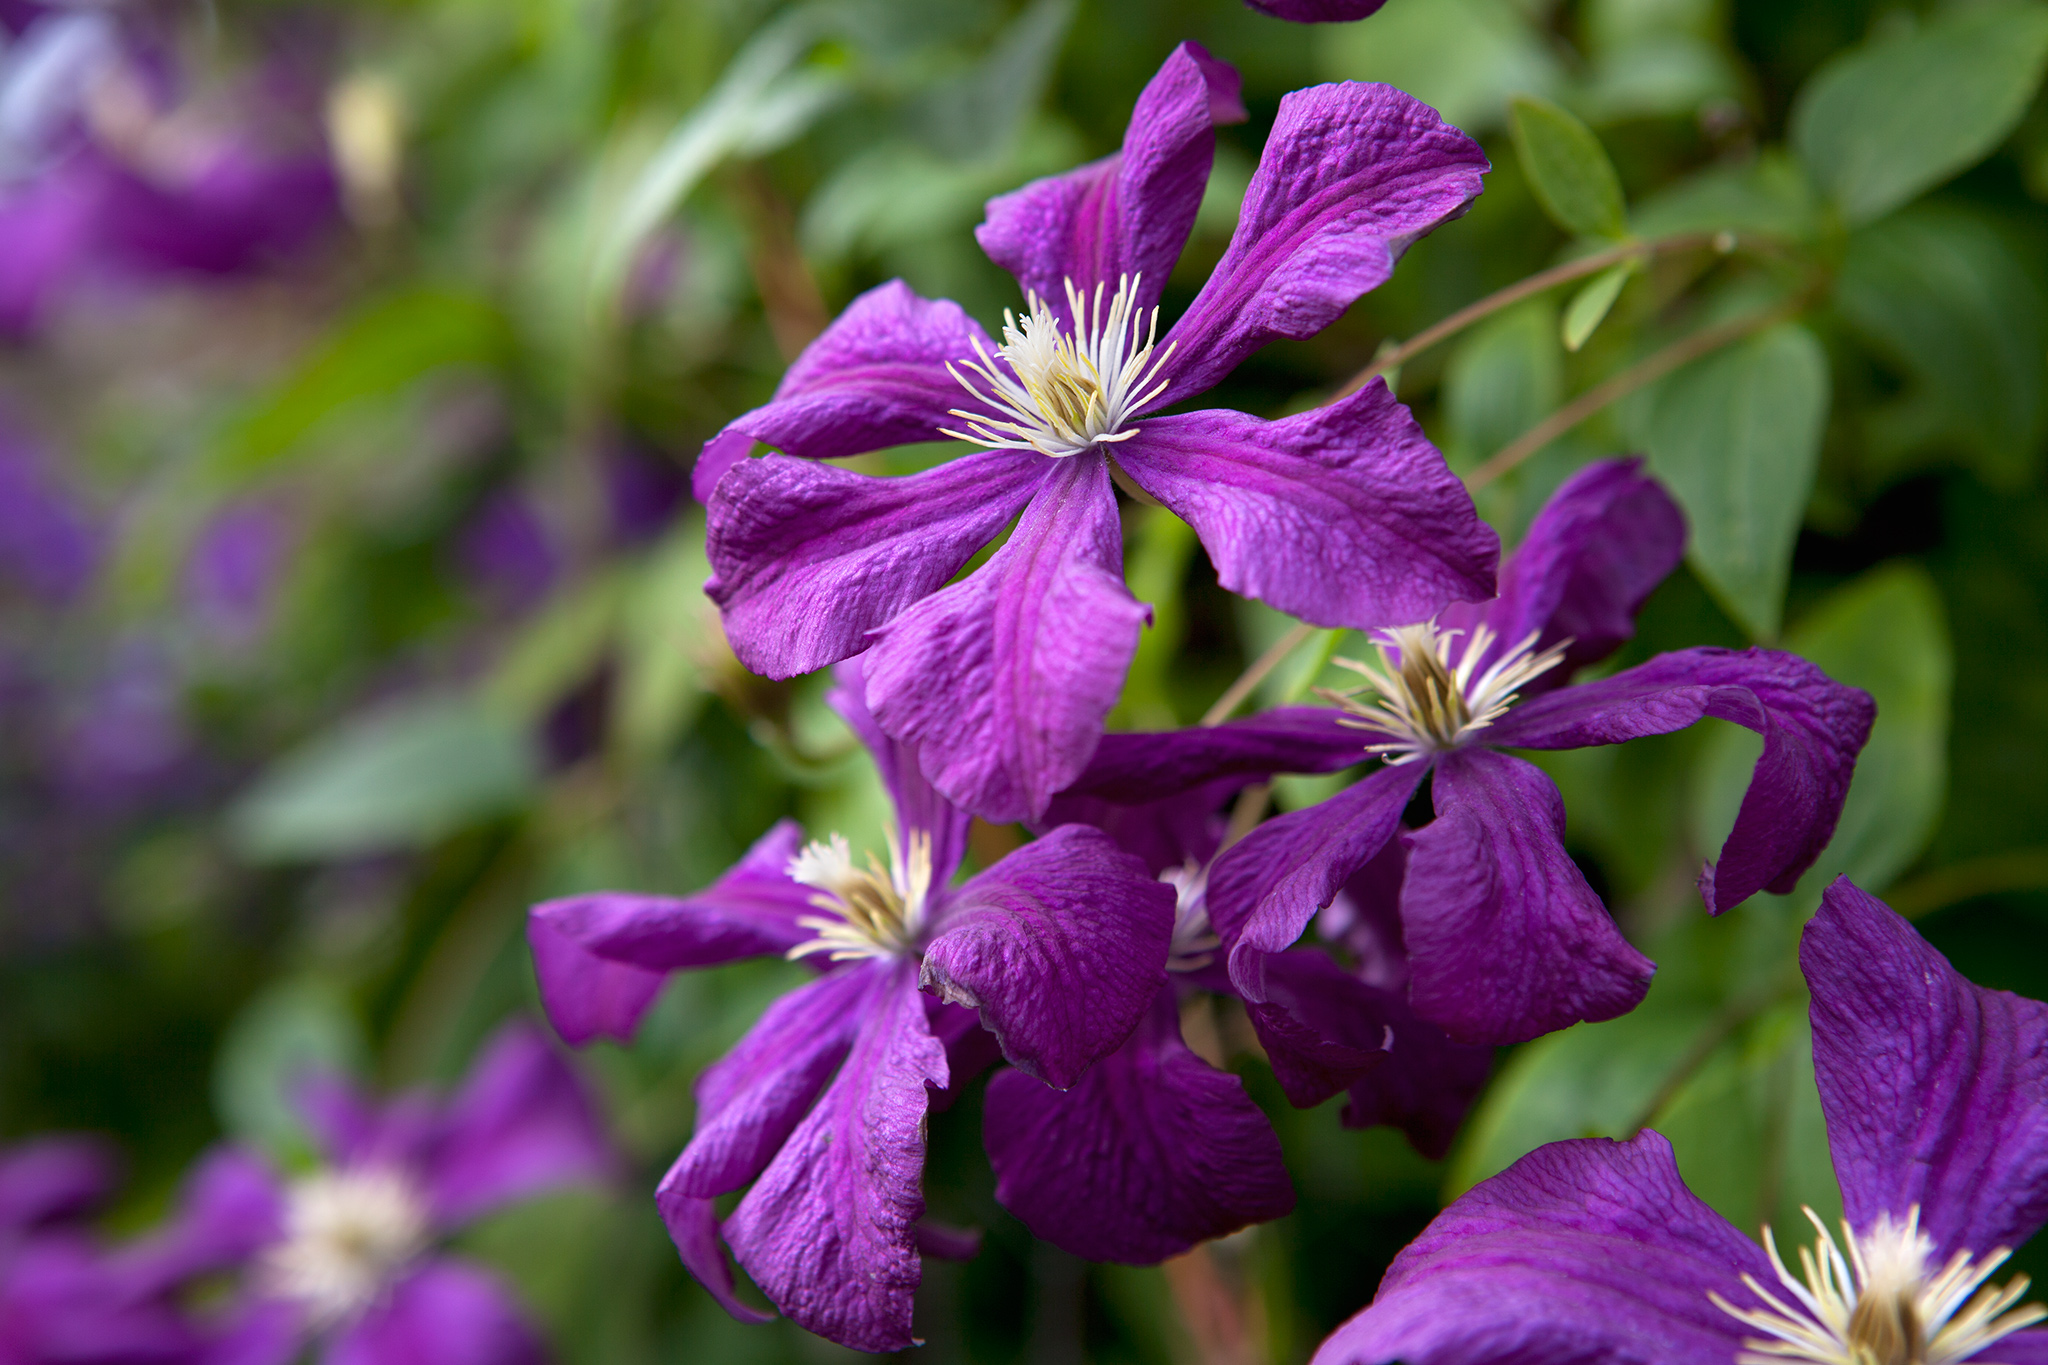 Plants with purple flowers